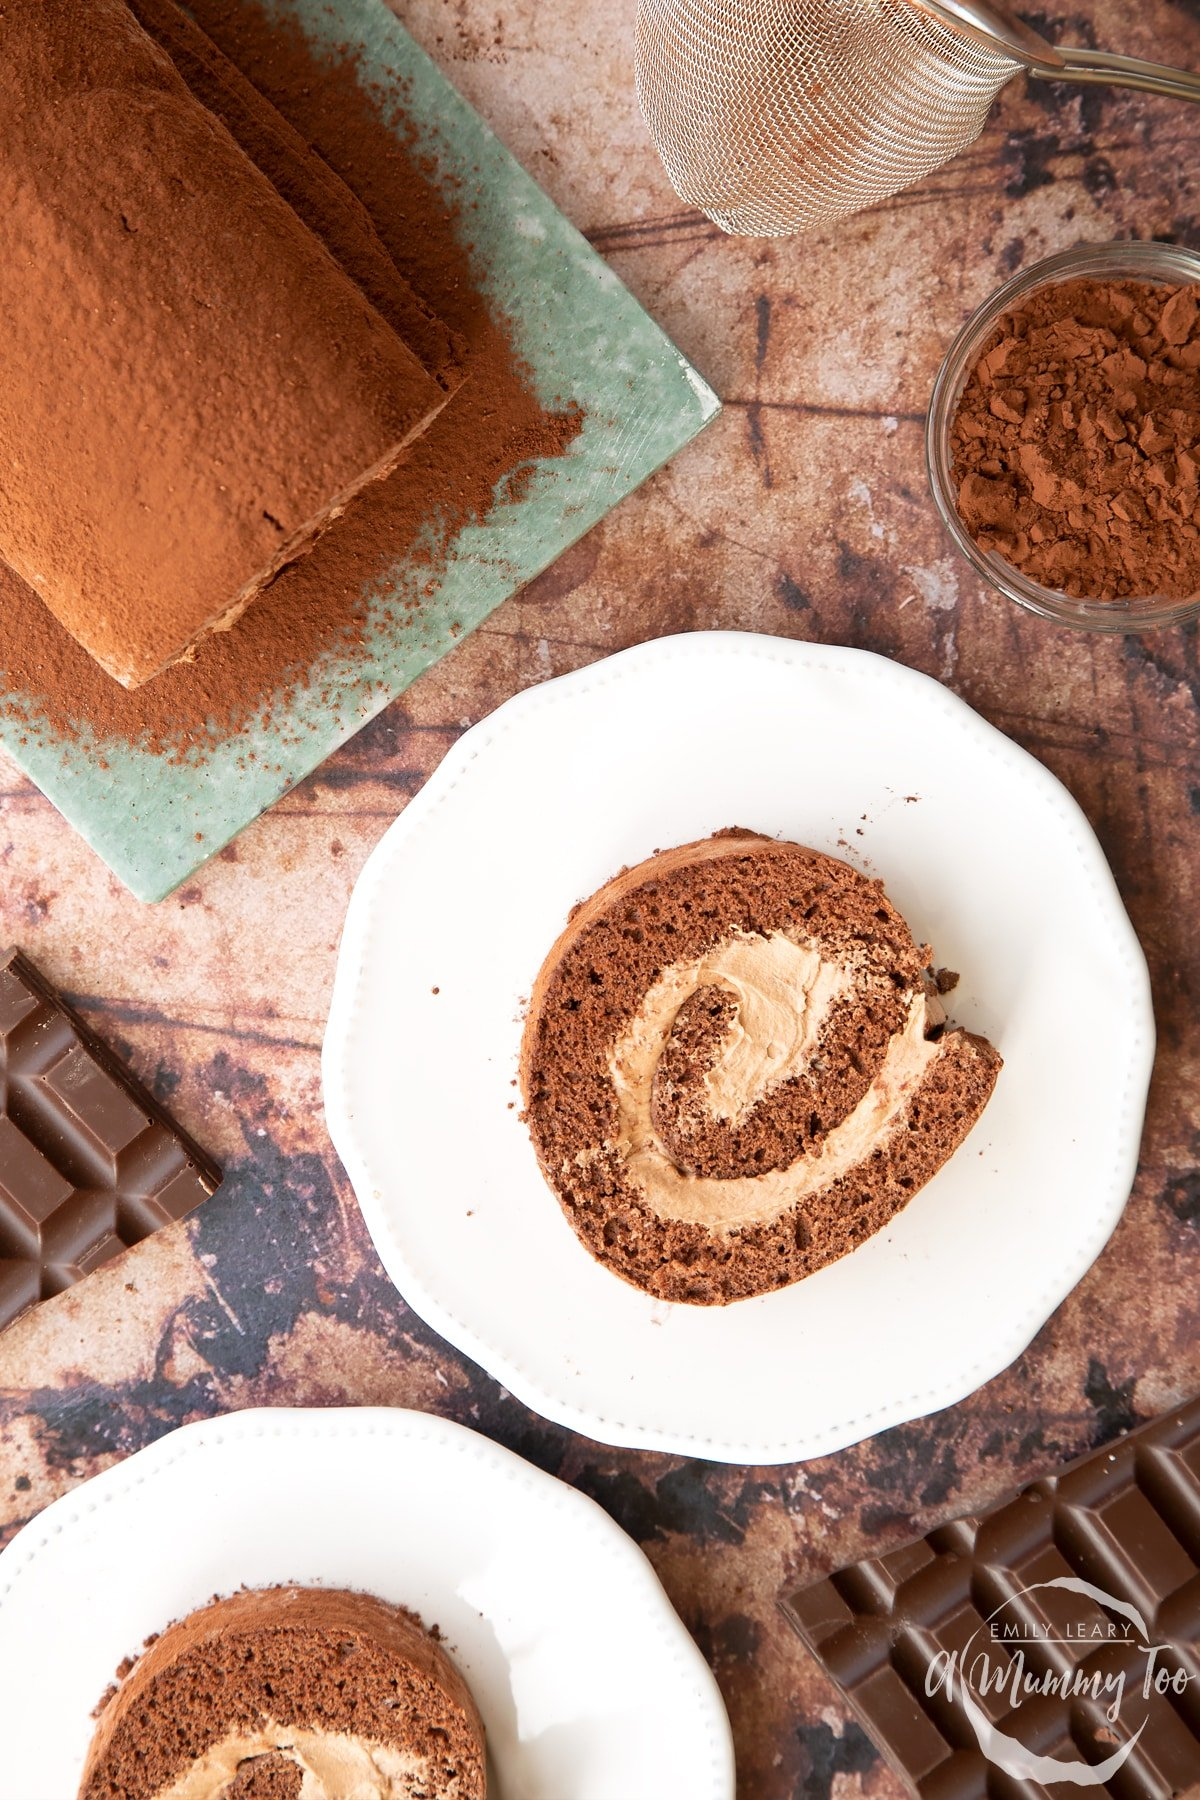 Two slices of Chocolate Swiss roll on white plates, shown from above.